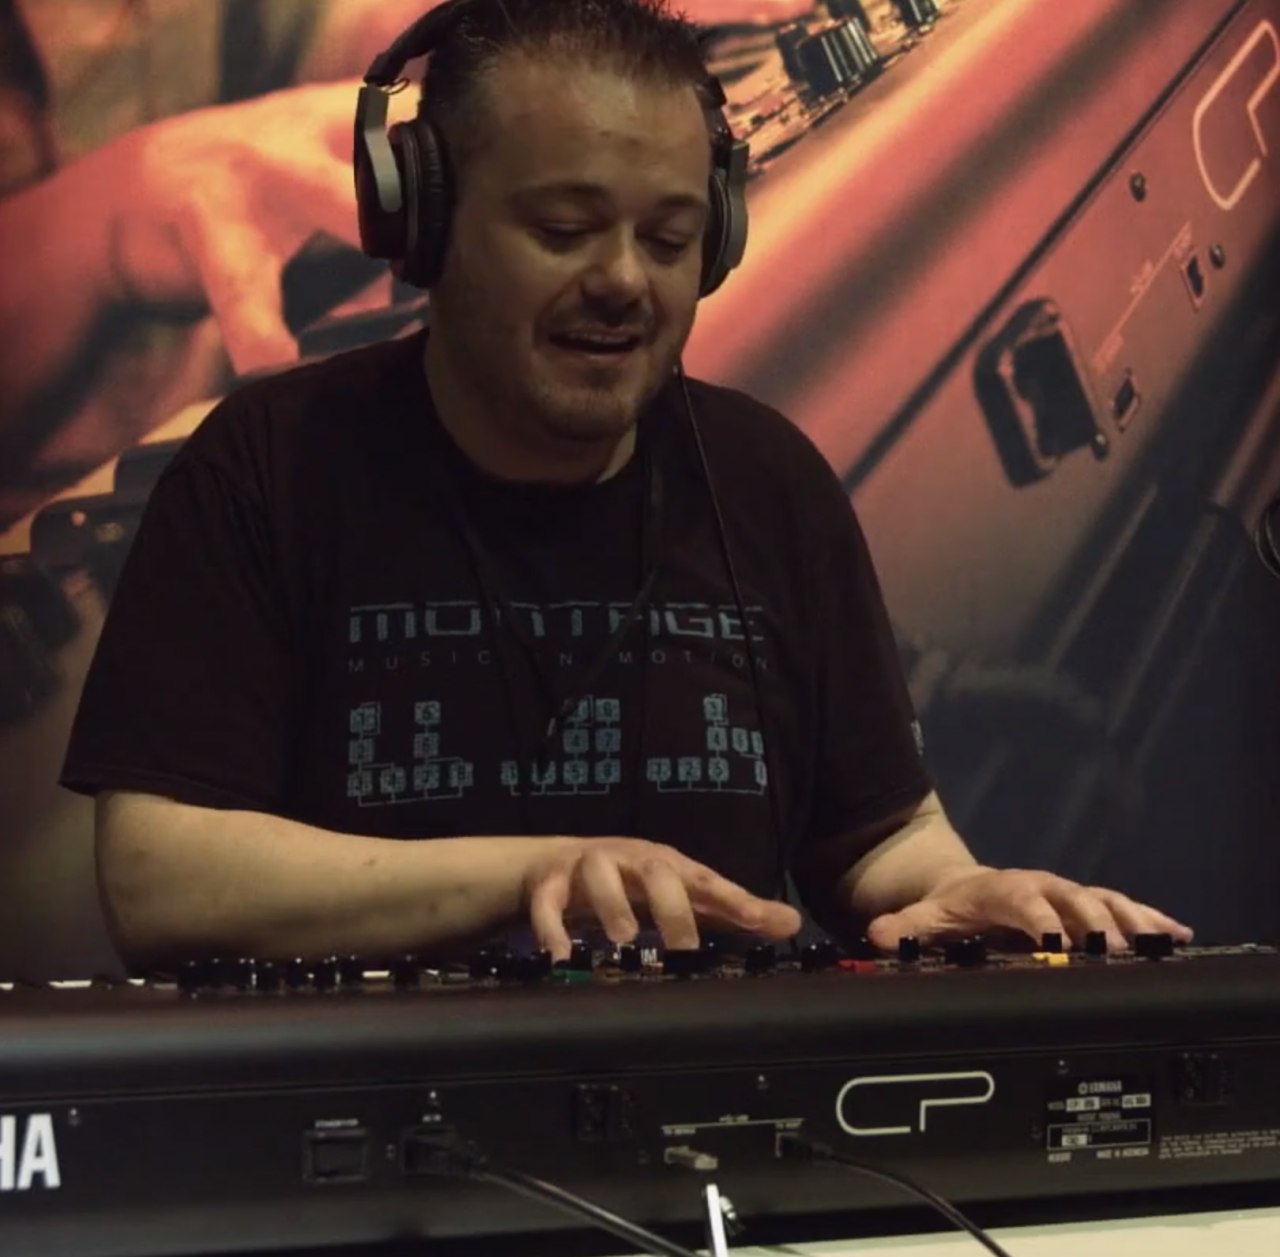 Winter NAMM 2019: Manuele Montesanti CP88 Performance